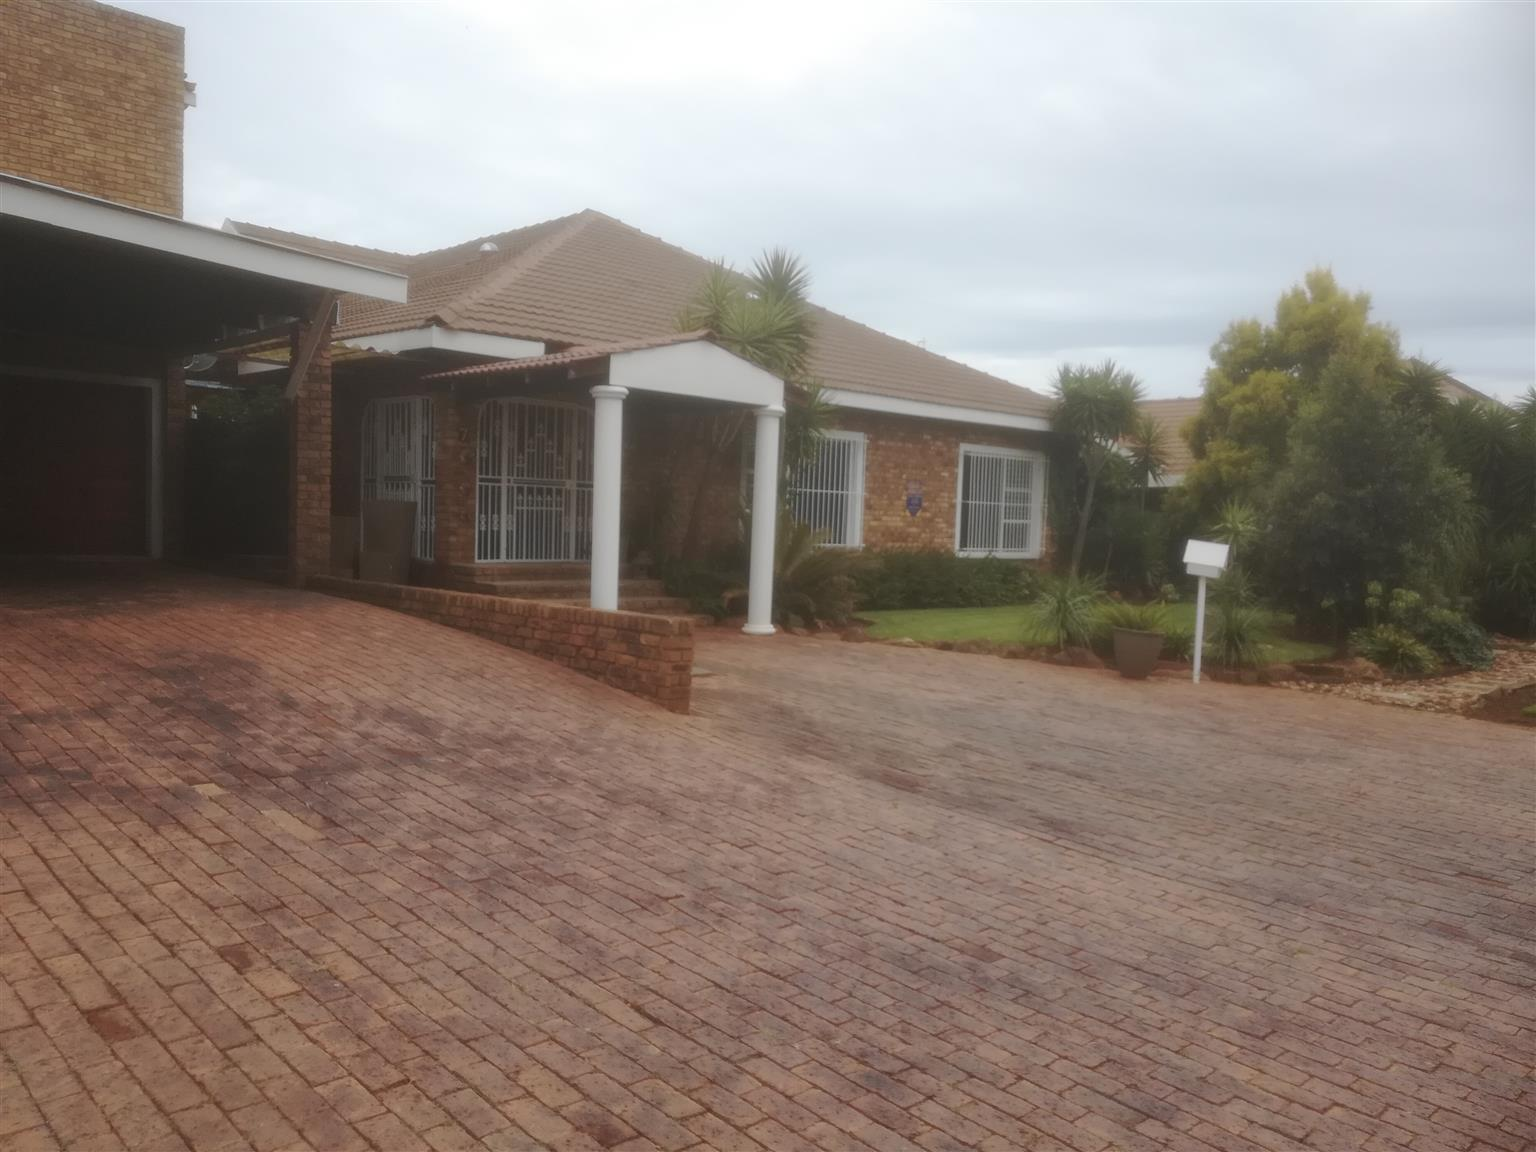 All You need for a Fmaily Home-Boomed Area-(Petersfield Ext.)